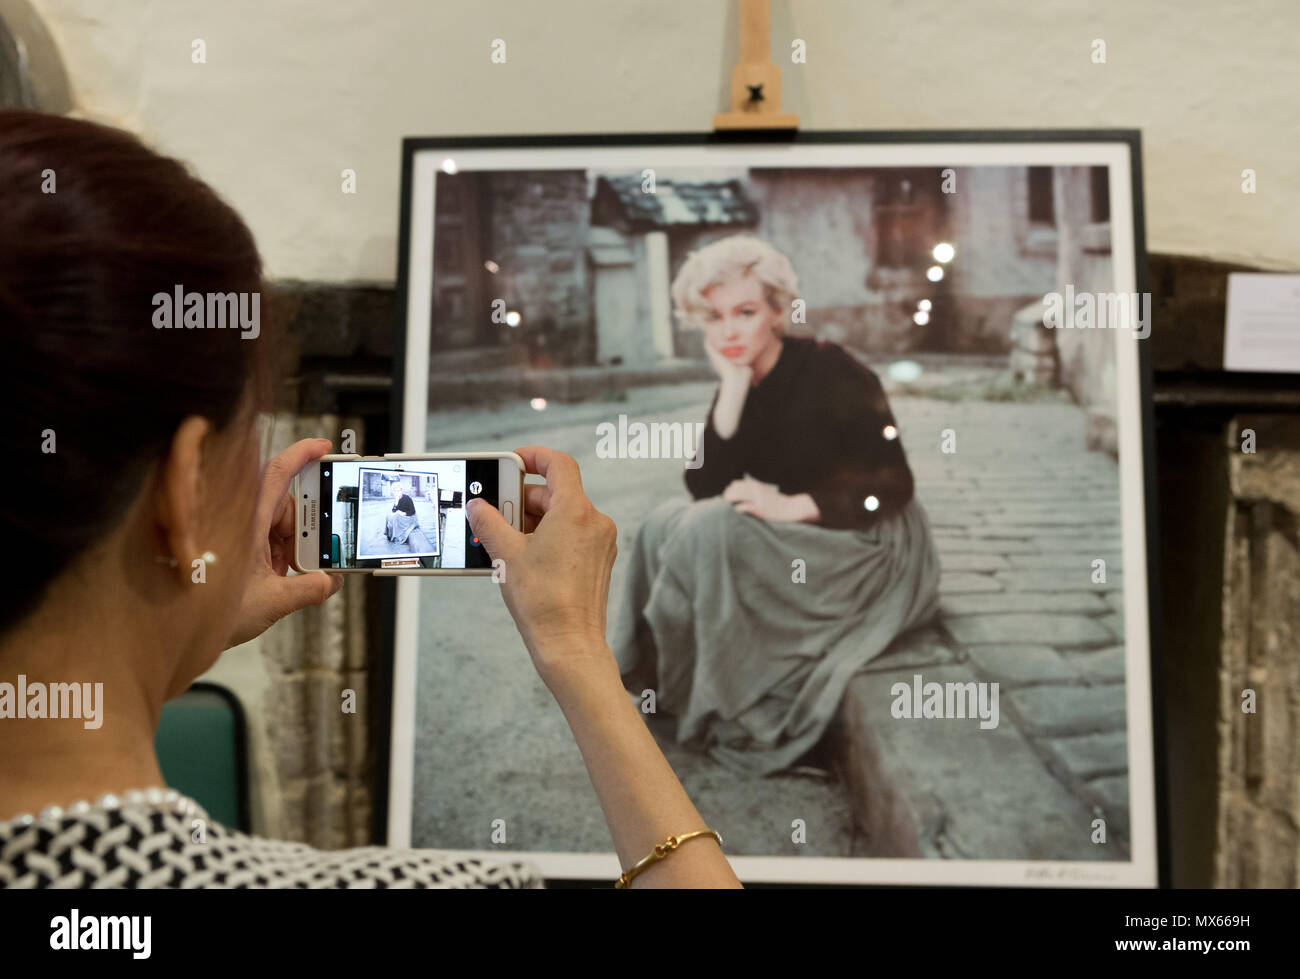 Bury St Edmunds, UK. 2nd Jun, 2018. Guest takes a photo of one of the exhibits at the 'Timeless' exhibition at Moyses Hall, Bury St Edmunds, which includes stunning images from Marilyn Monroe's very earliest days as a model, behind-the-scenes captures from her film-work, breathtaking location and studio work and emotive candid images that showcase her true personality in a unique and engaging way. Credit: Keith mindham/Alamy Live News - Stock Image